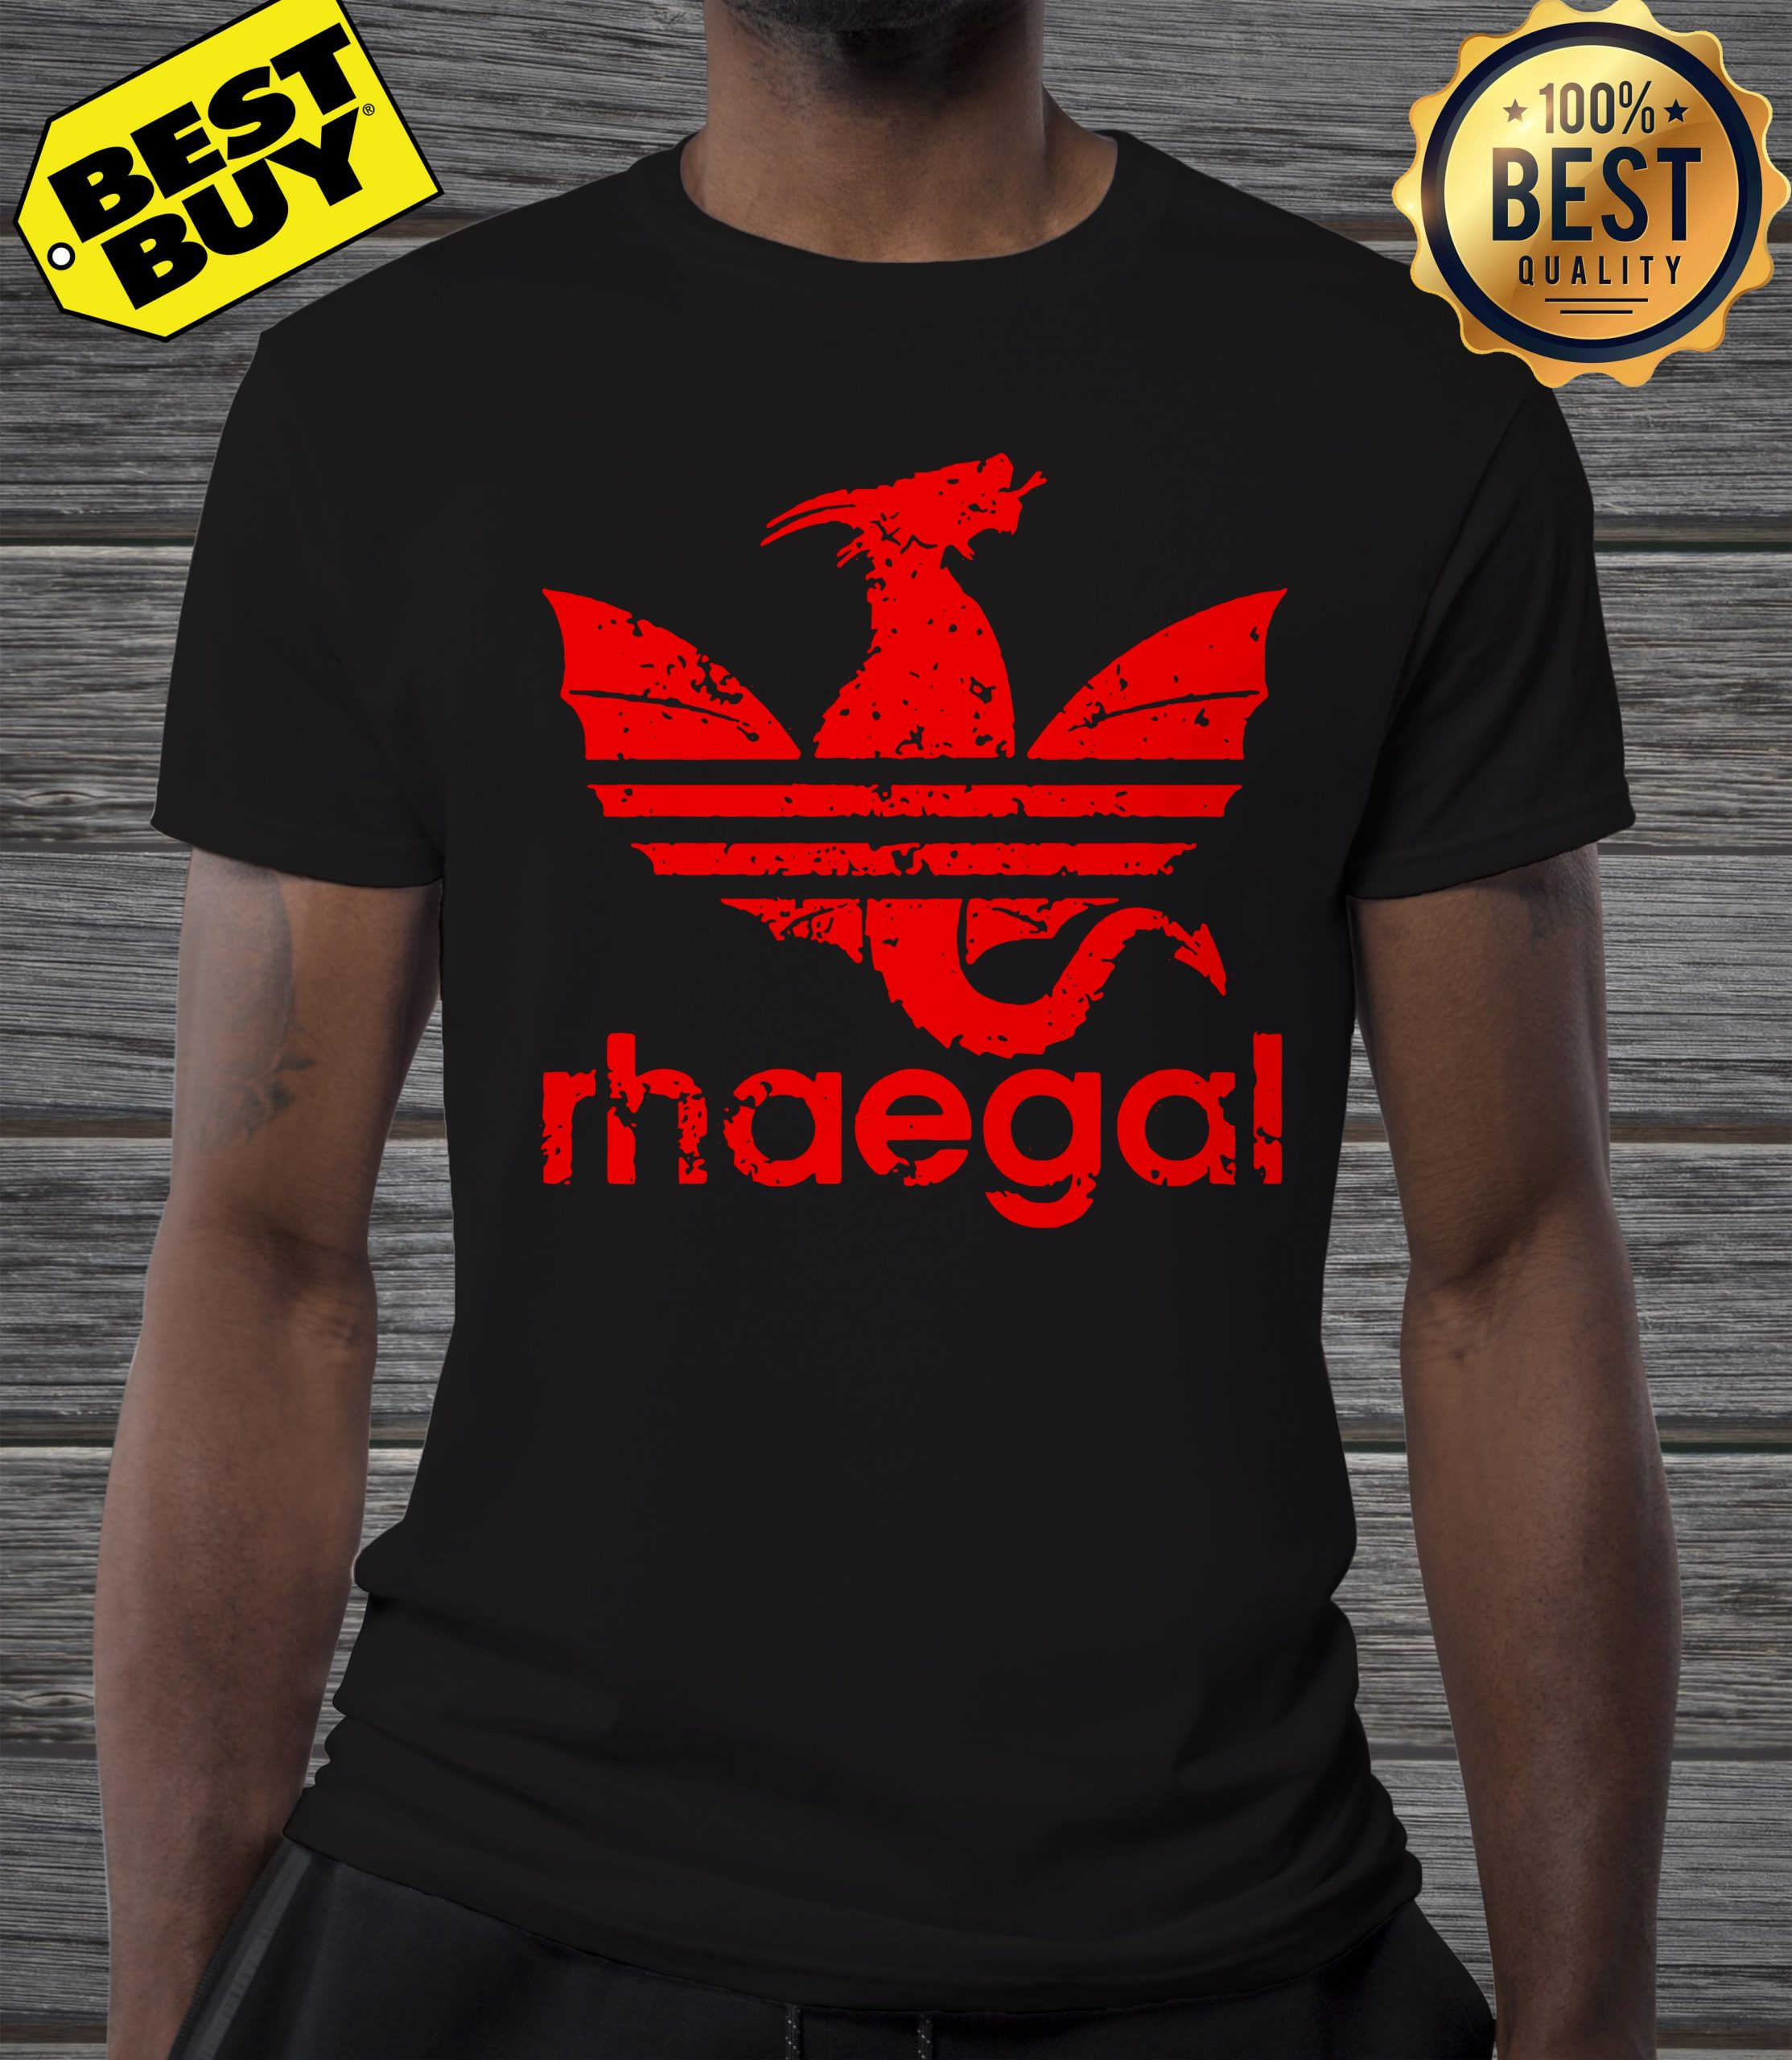 Rhaegal Adidas game of thrones shirt